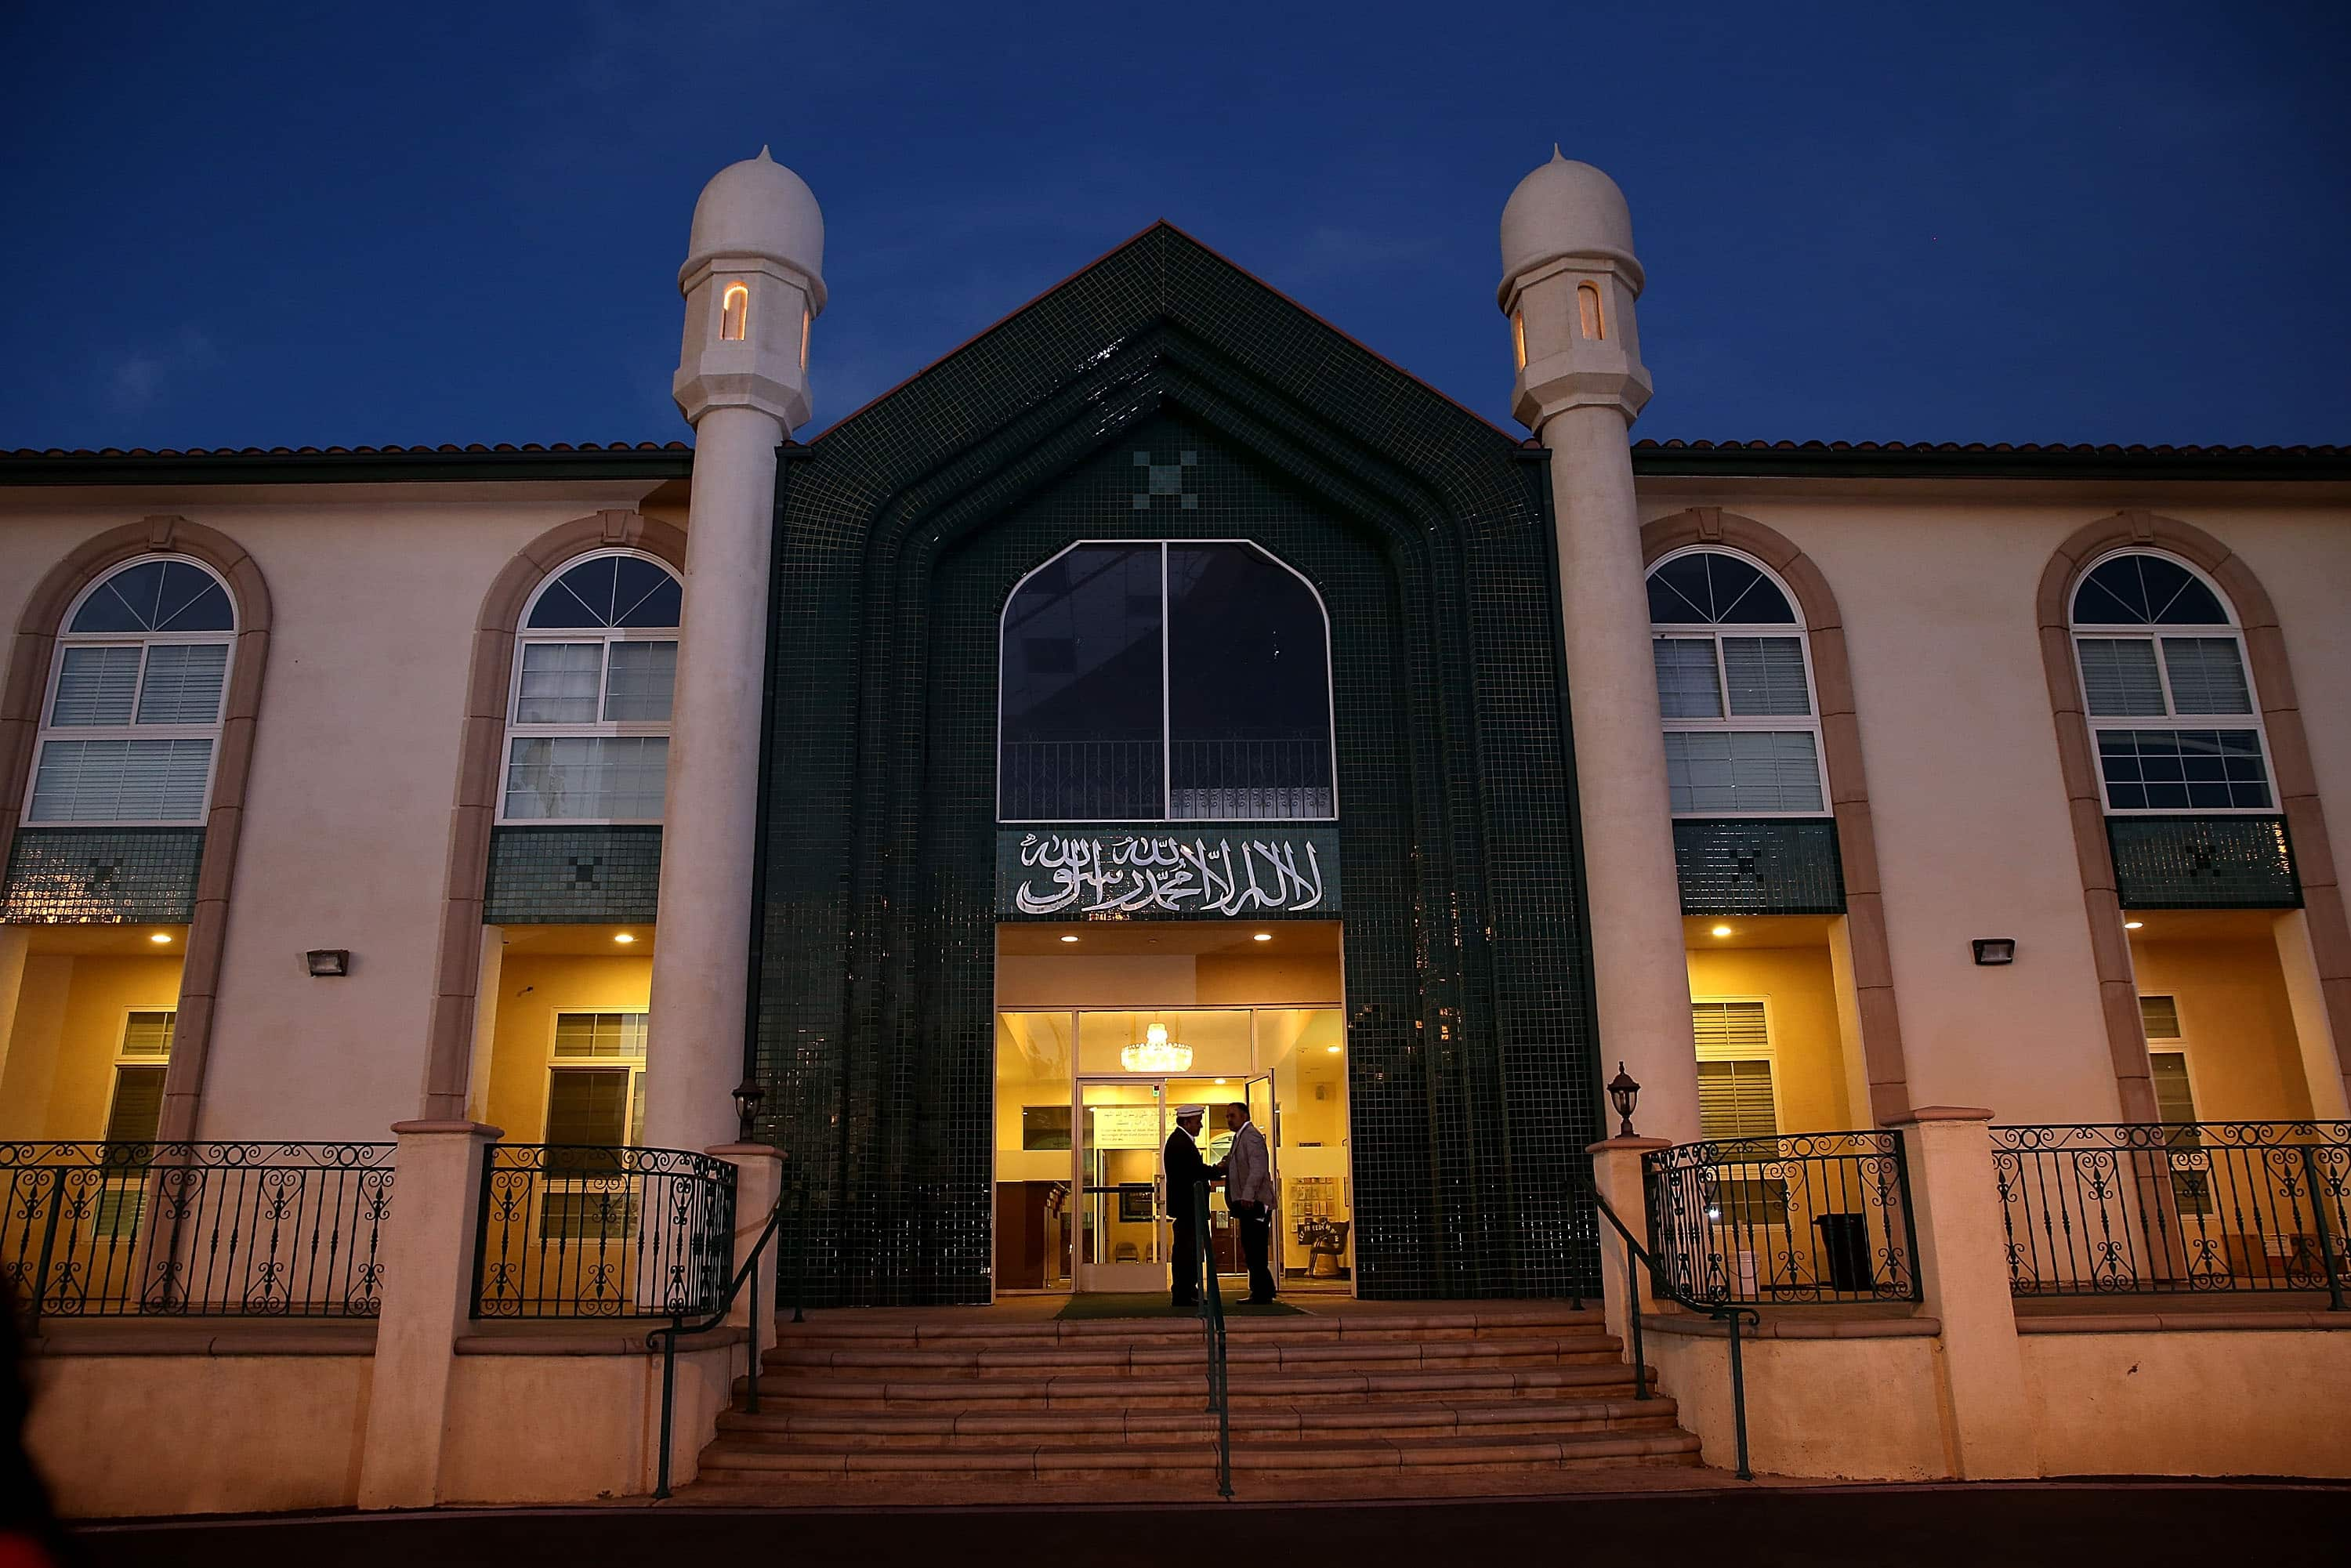 More US mosques receive hate letters